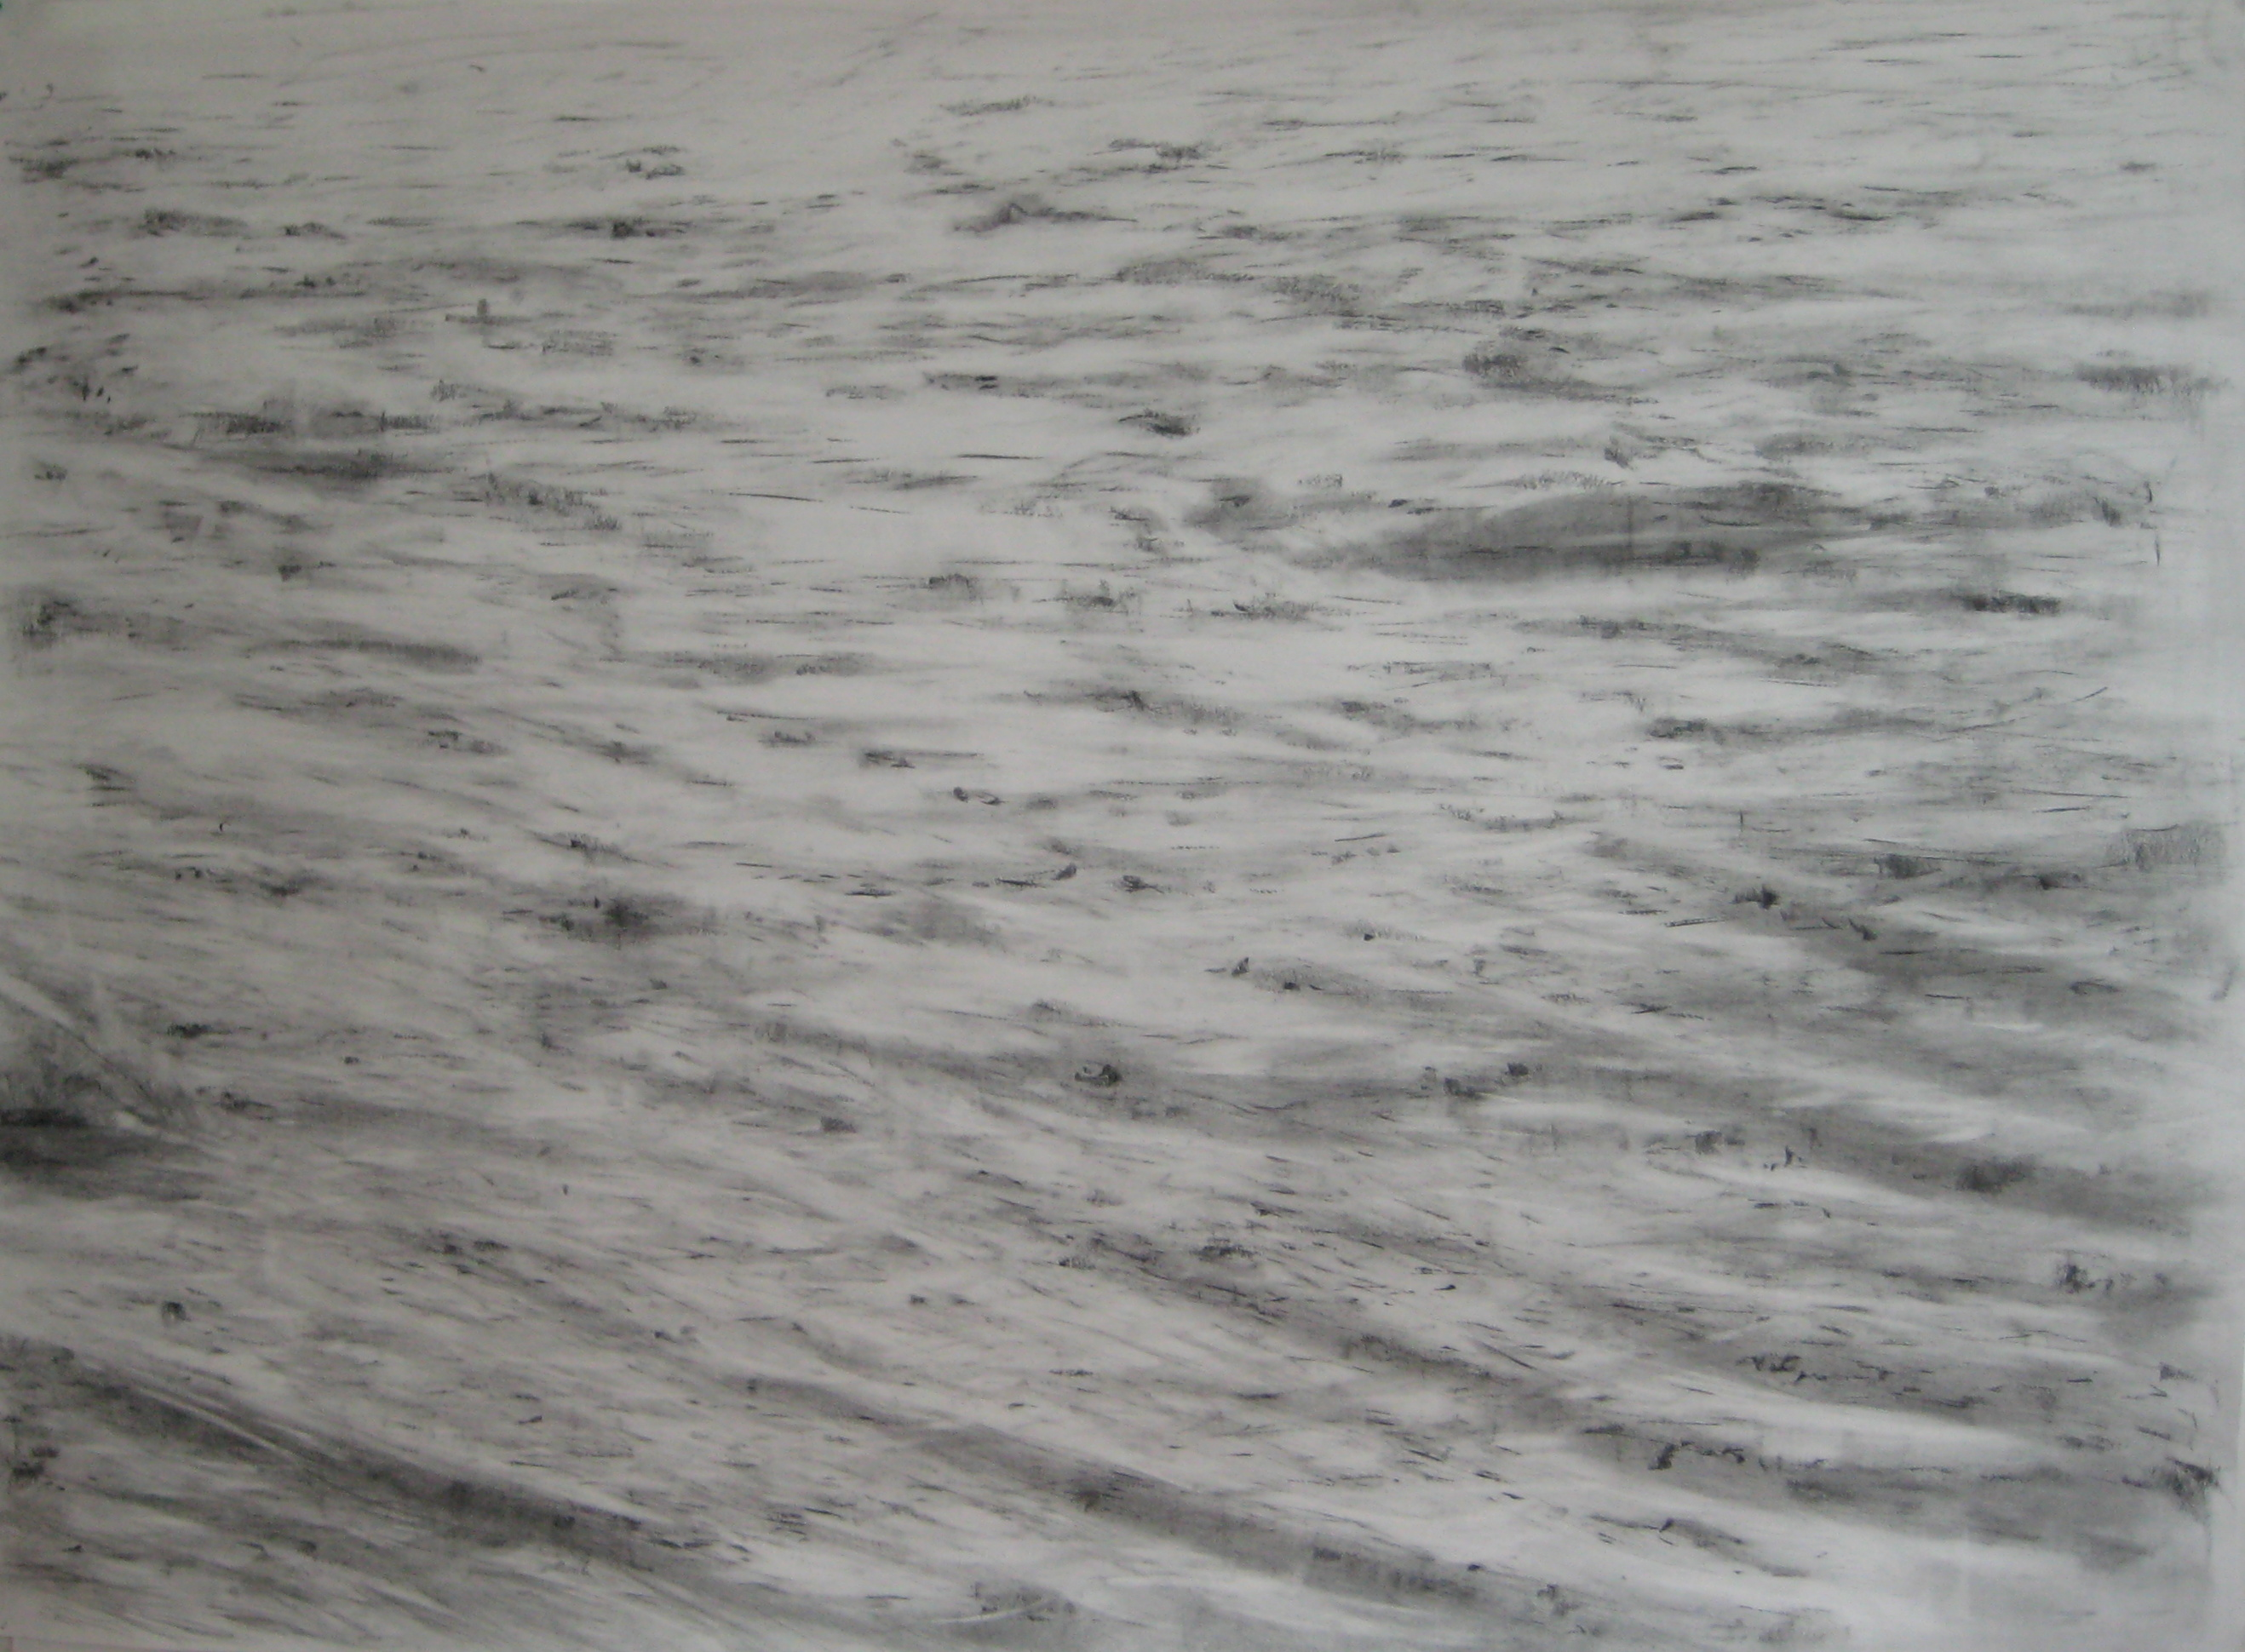 carita-savolainen-airscape-on-water (Stream), pencil-and-charcoal-on-paper, veil-150cm-x-110cm-2012